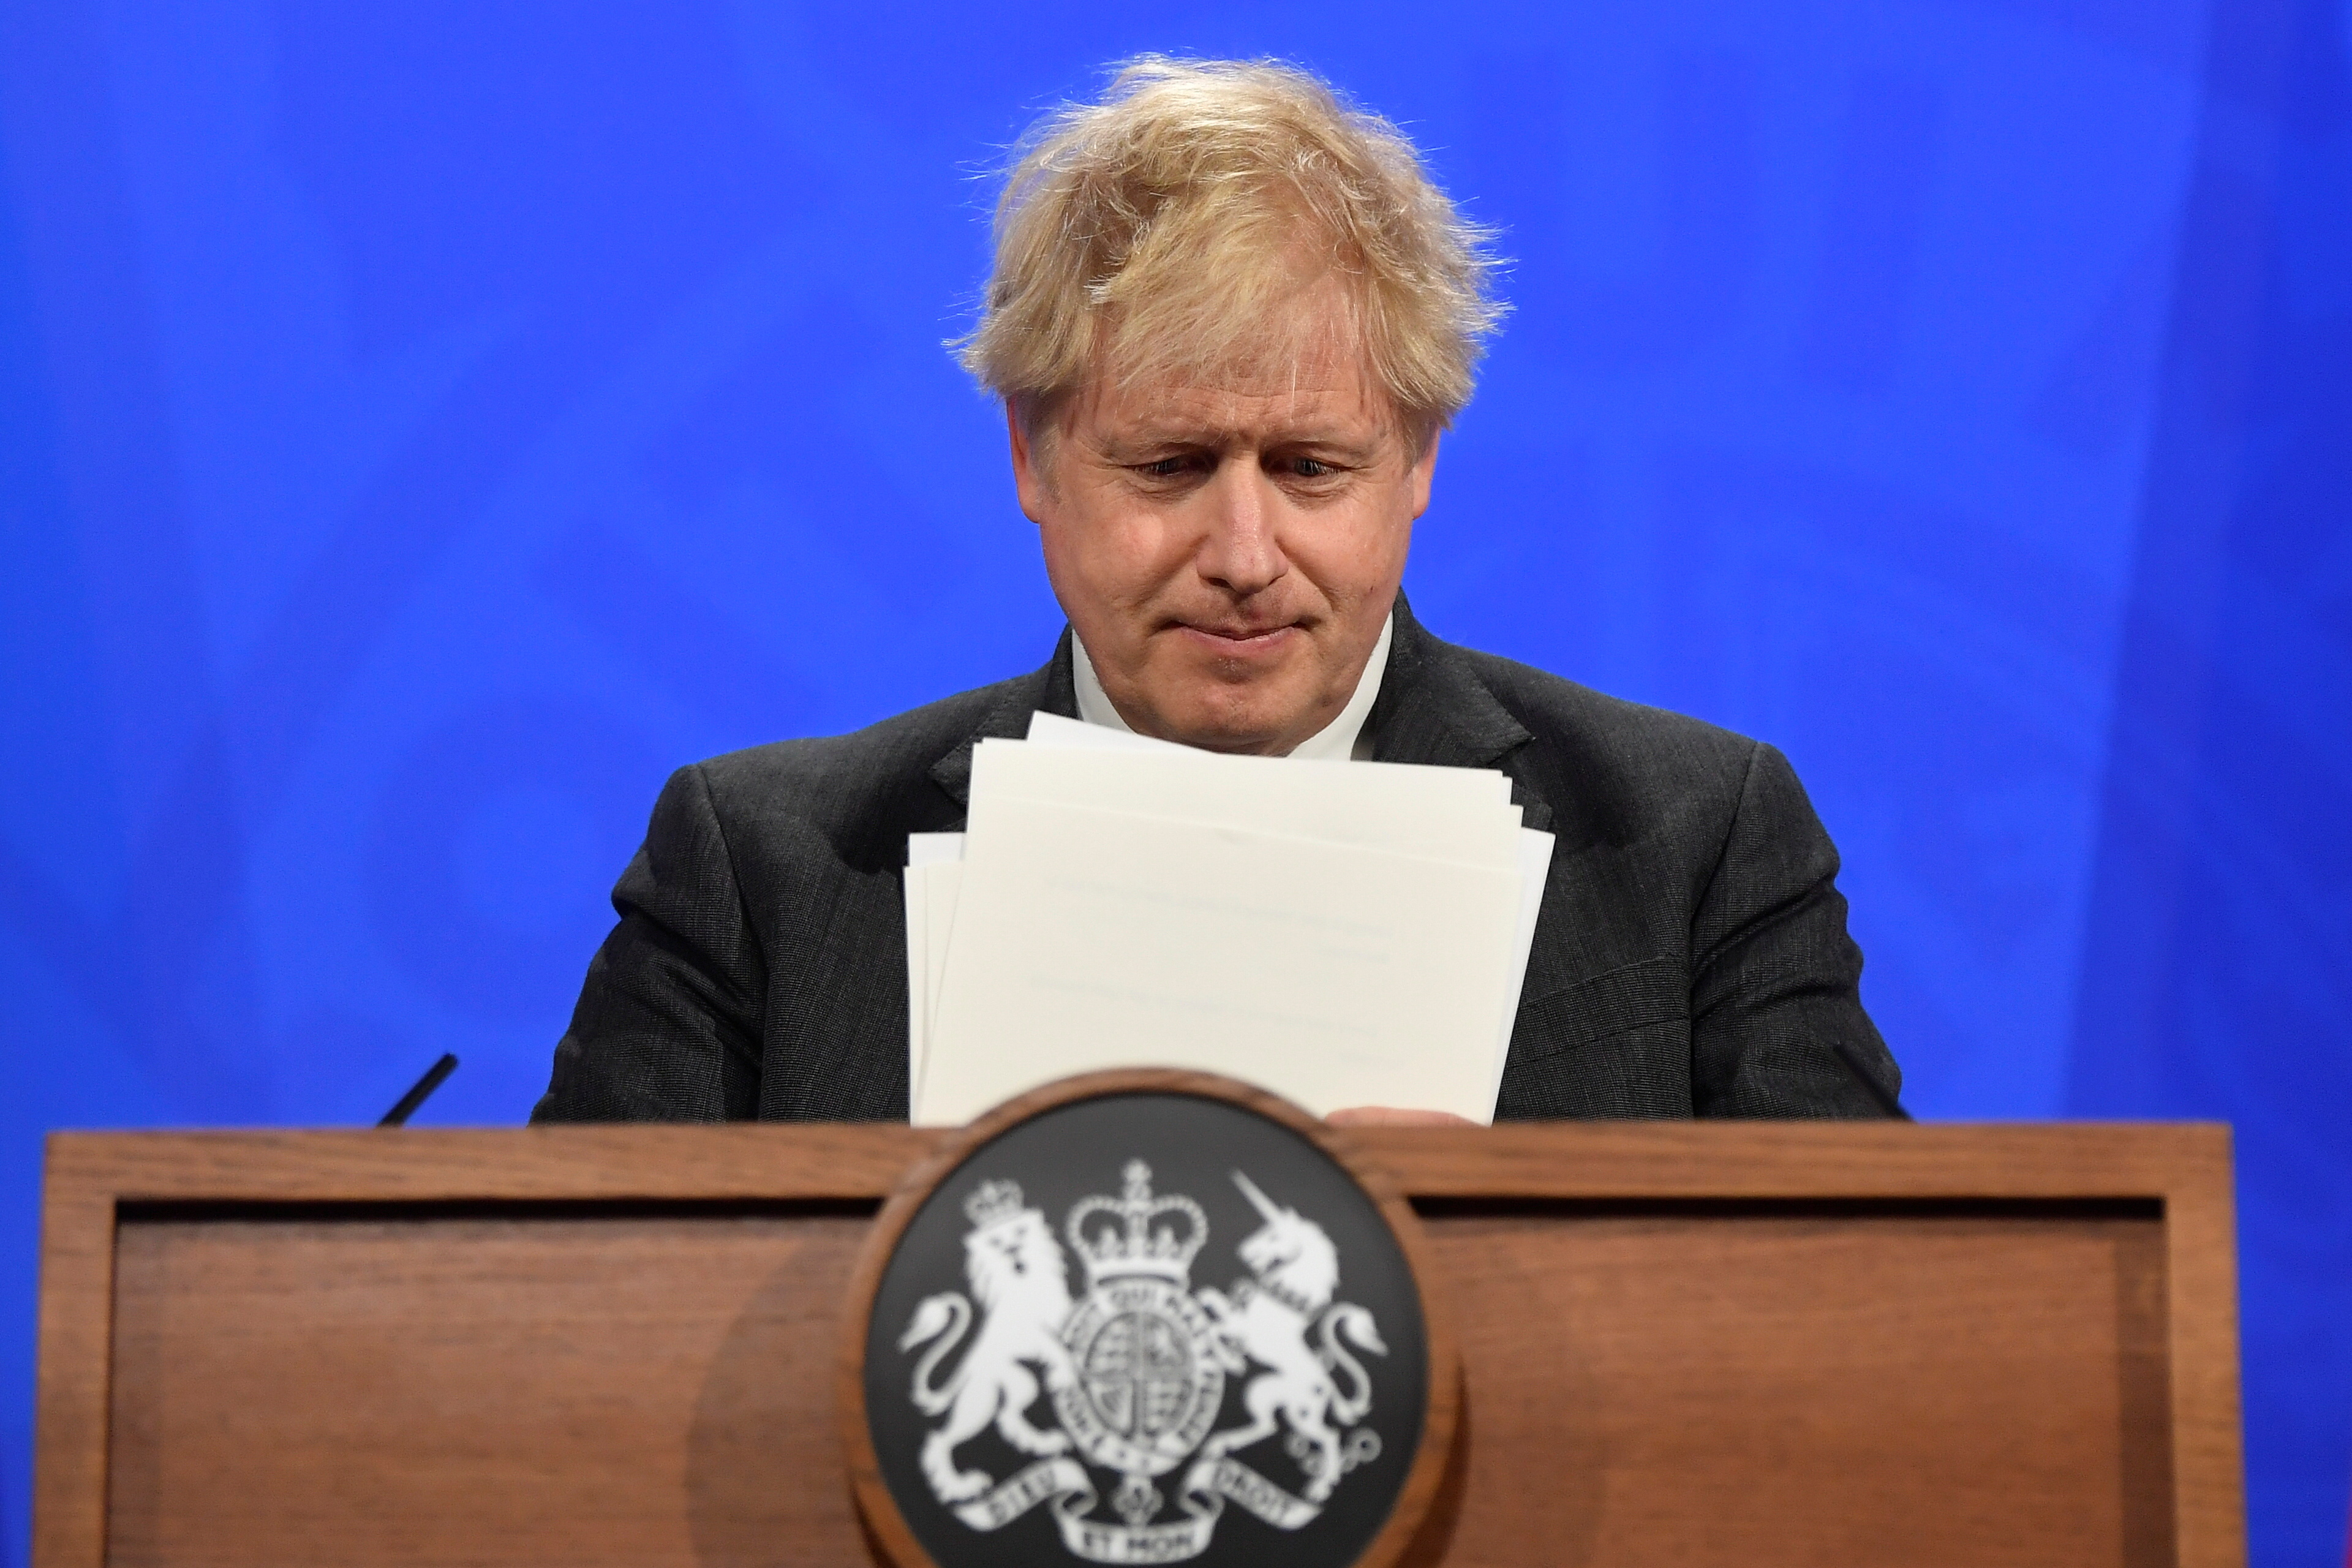 Britain's Prime Minister Boris Johnson holds a news conference at 10 Downing Street,  amid the coronavirus disease (COVID-19) outbreak, in London, Britain, April 20, 2021. REUTERS/Toby Melville/Pool